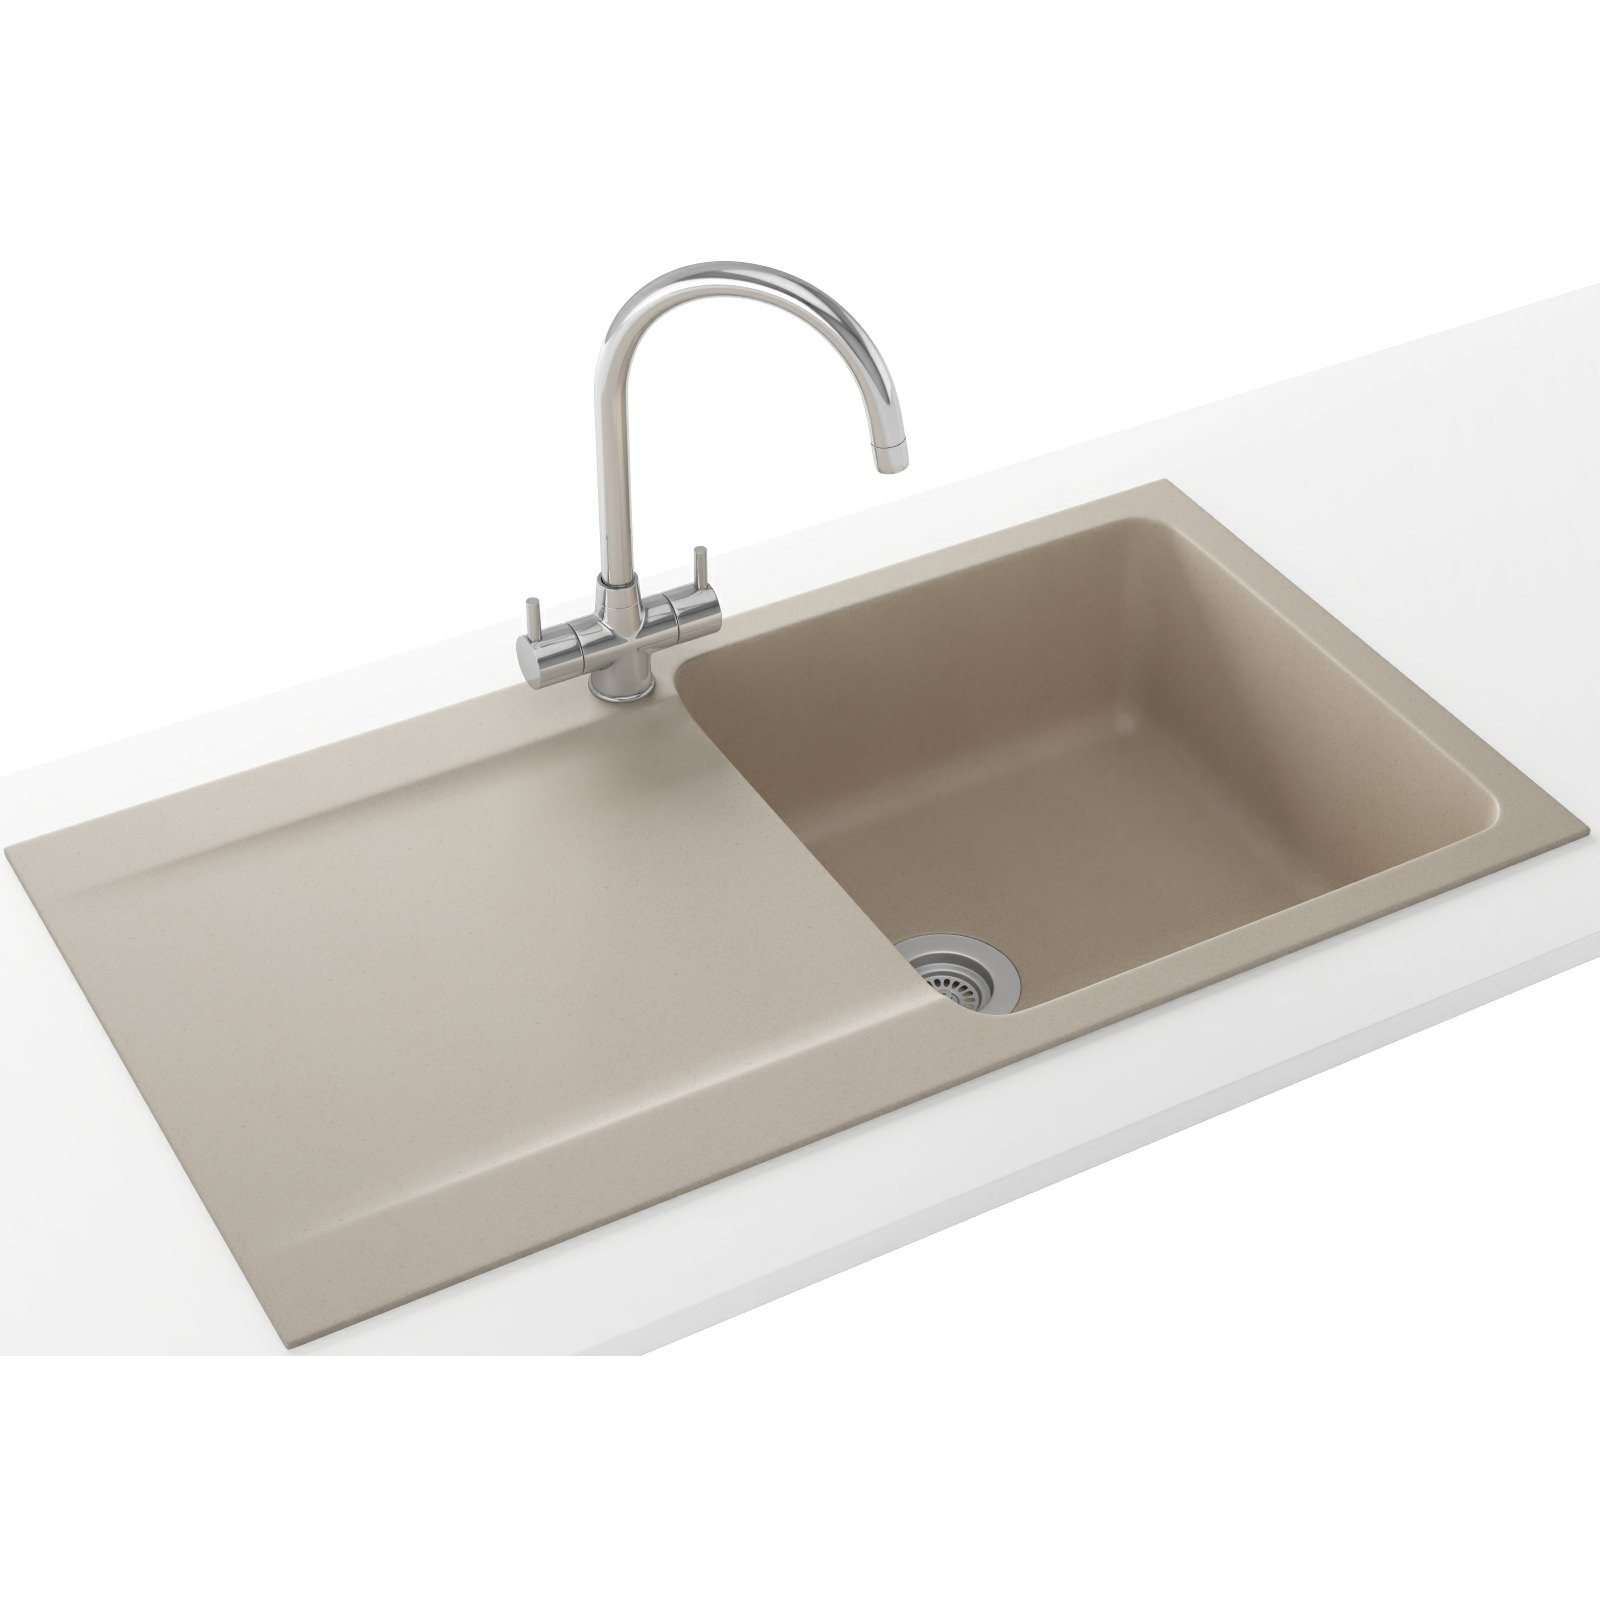 Franke Sinks And Taps : Franke Orion Propack OID 611-94 Tectonite Coffee Sink And Tap 114 ...